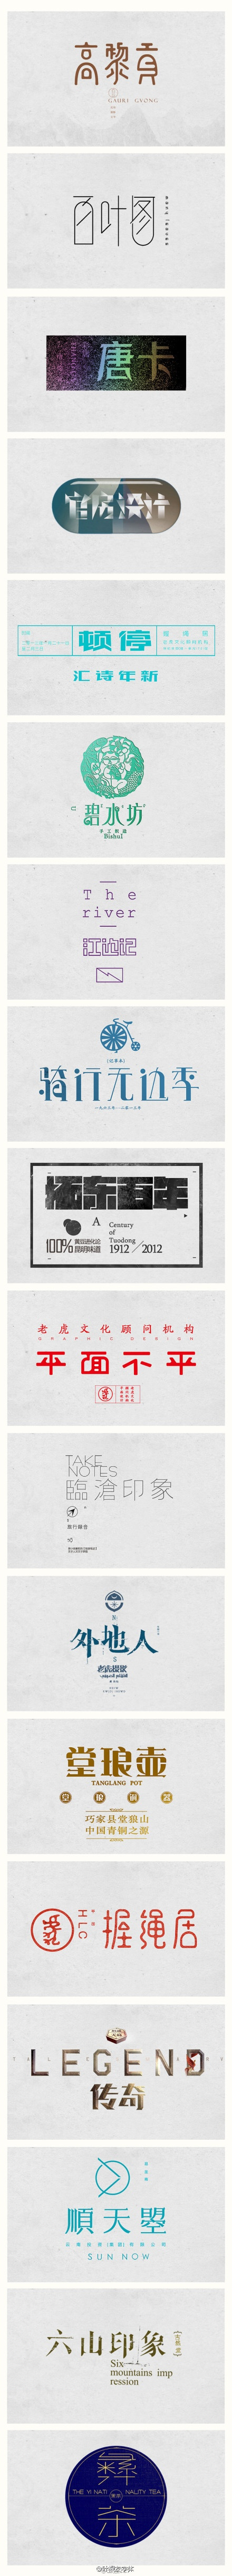 Chinese logotype /